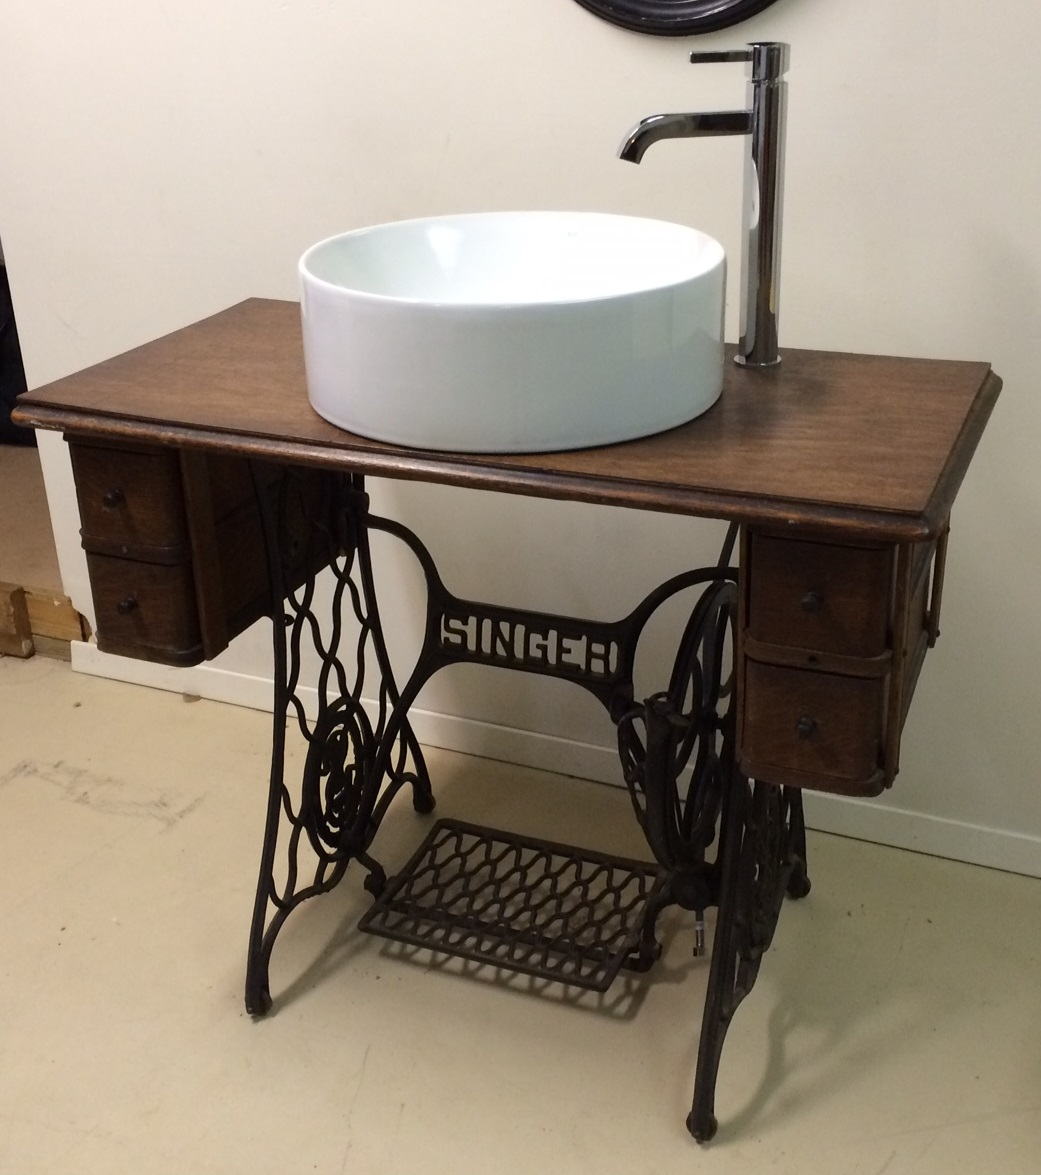 Singer Sewing Table Converted Bathroom Sink Vanity Chairish